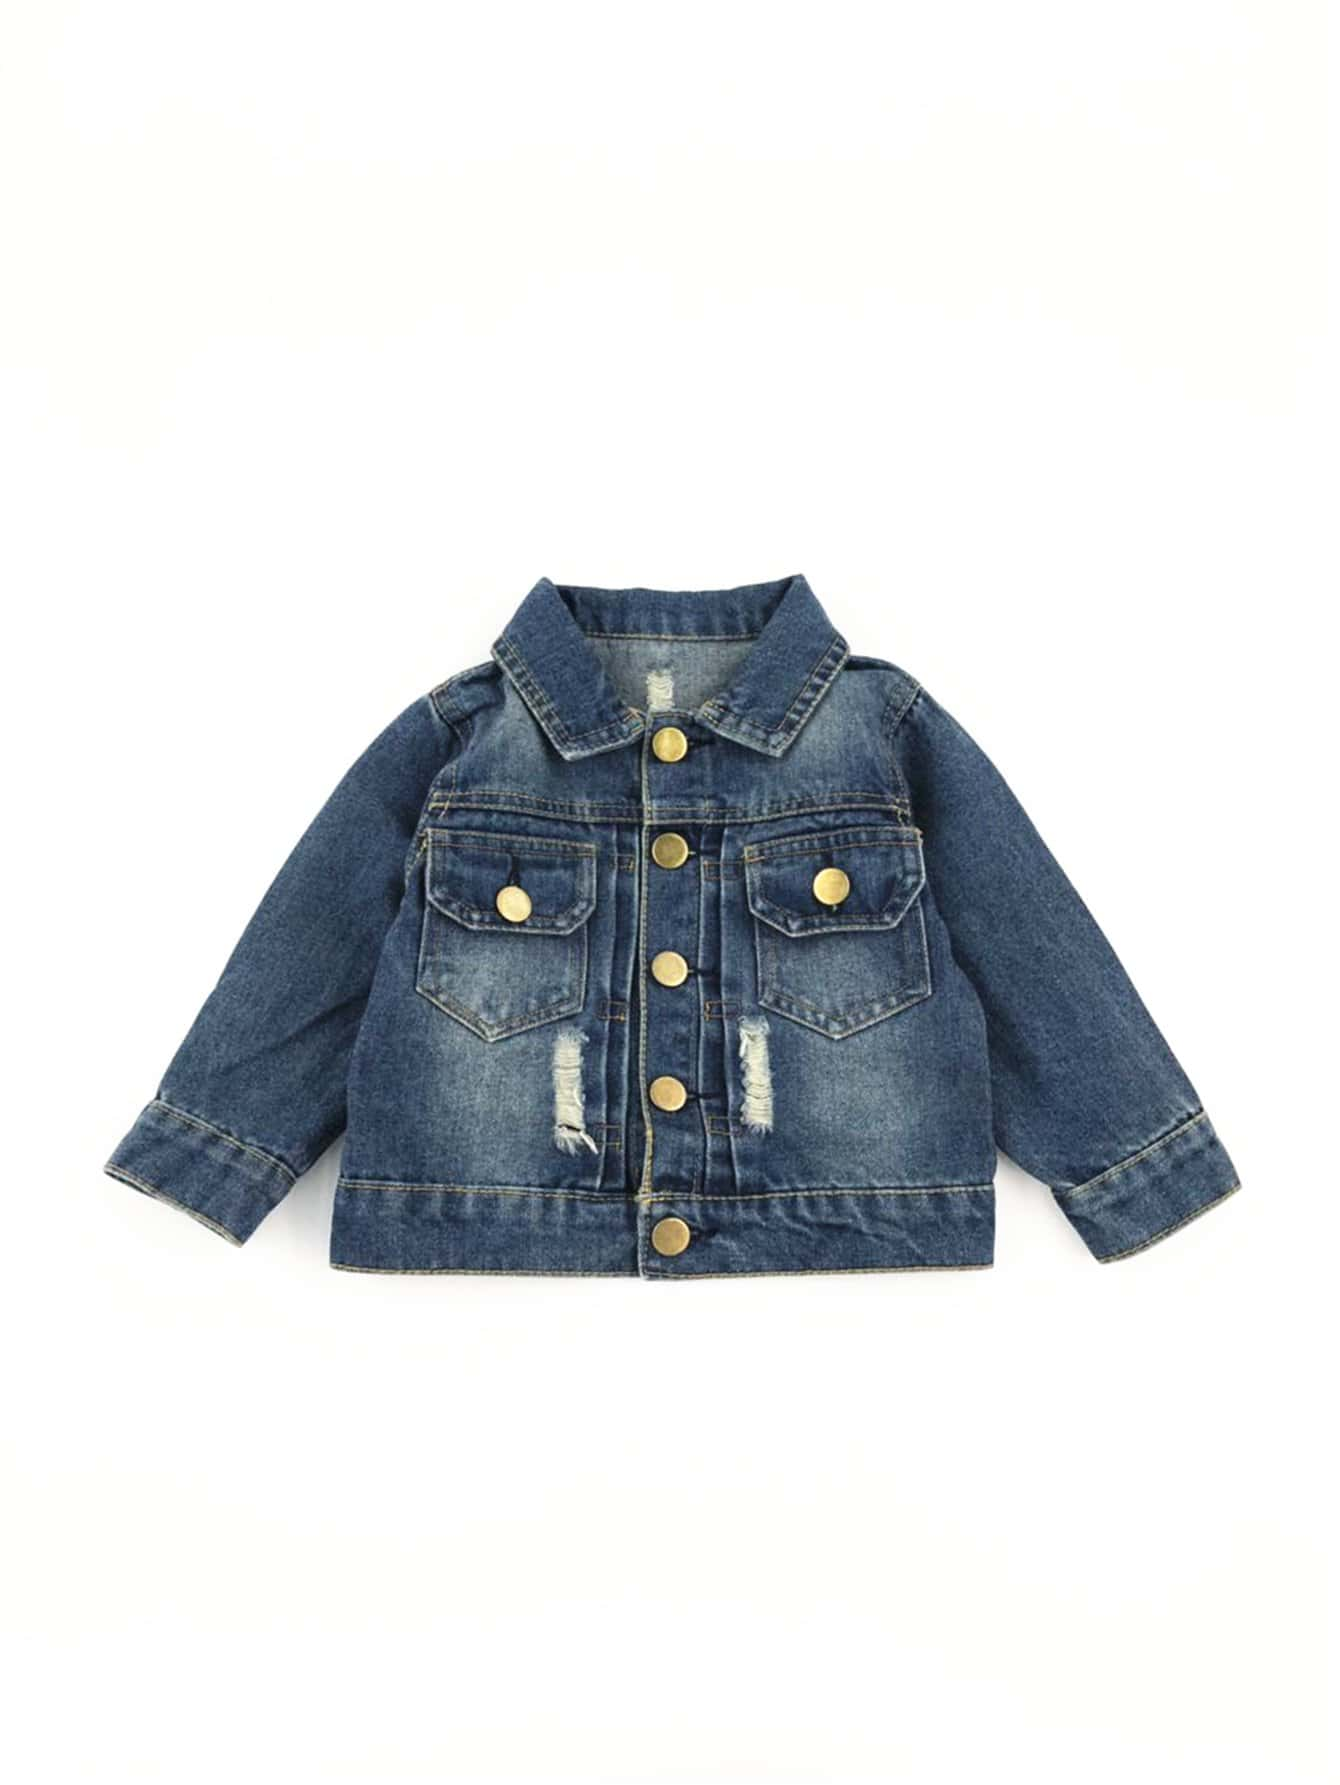 Boys Button Detail Ripped Jacket